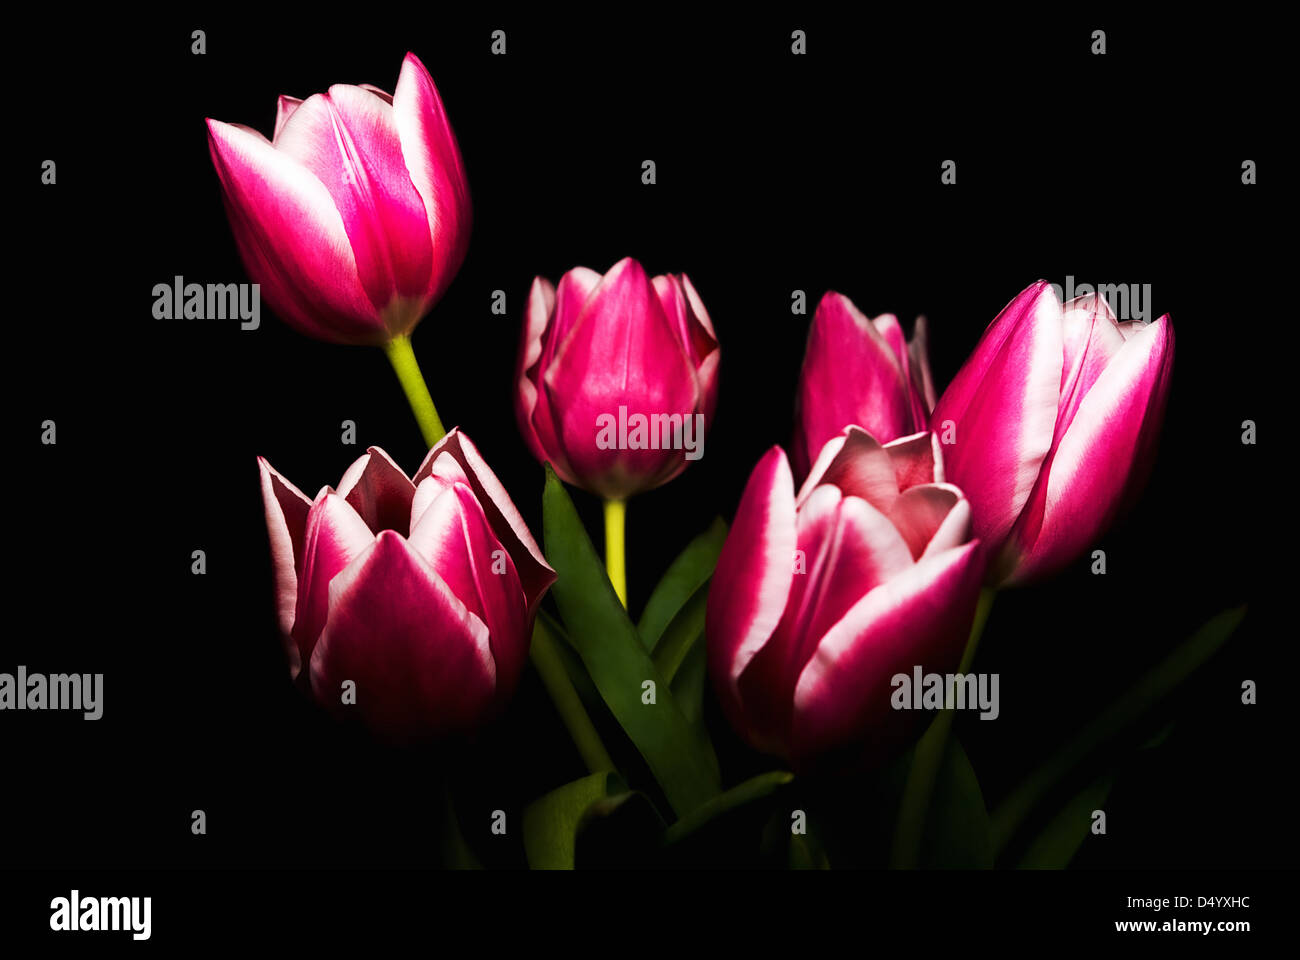 Bouquet Of Pink Tulips Over Dark Background. - Stock Image